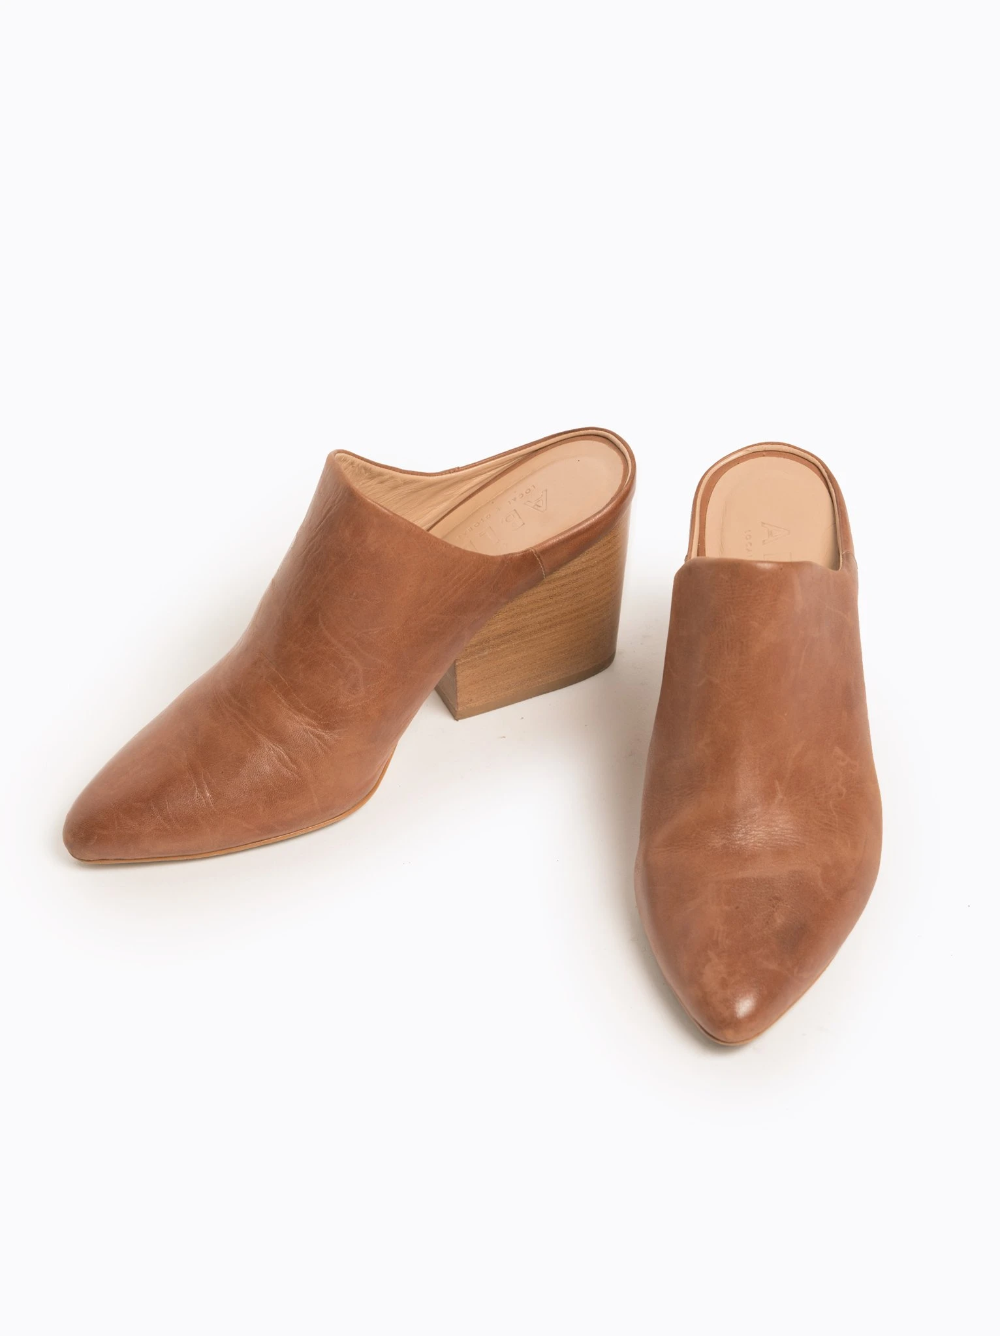 Heels, Stylish shoes for women, Mules